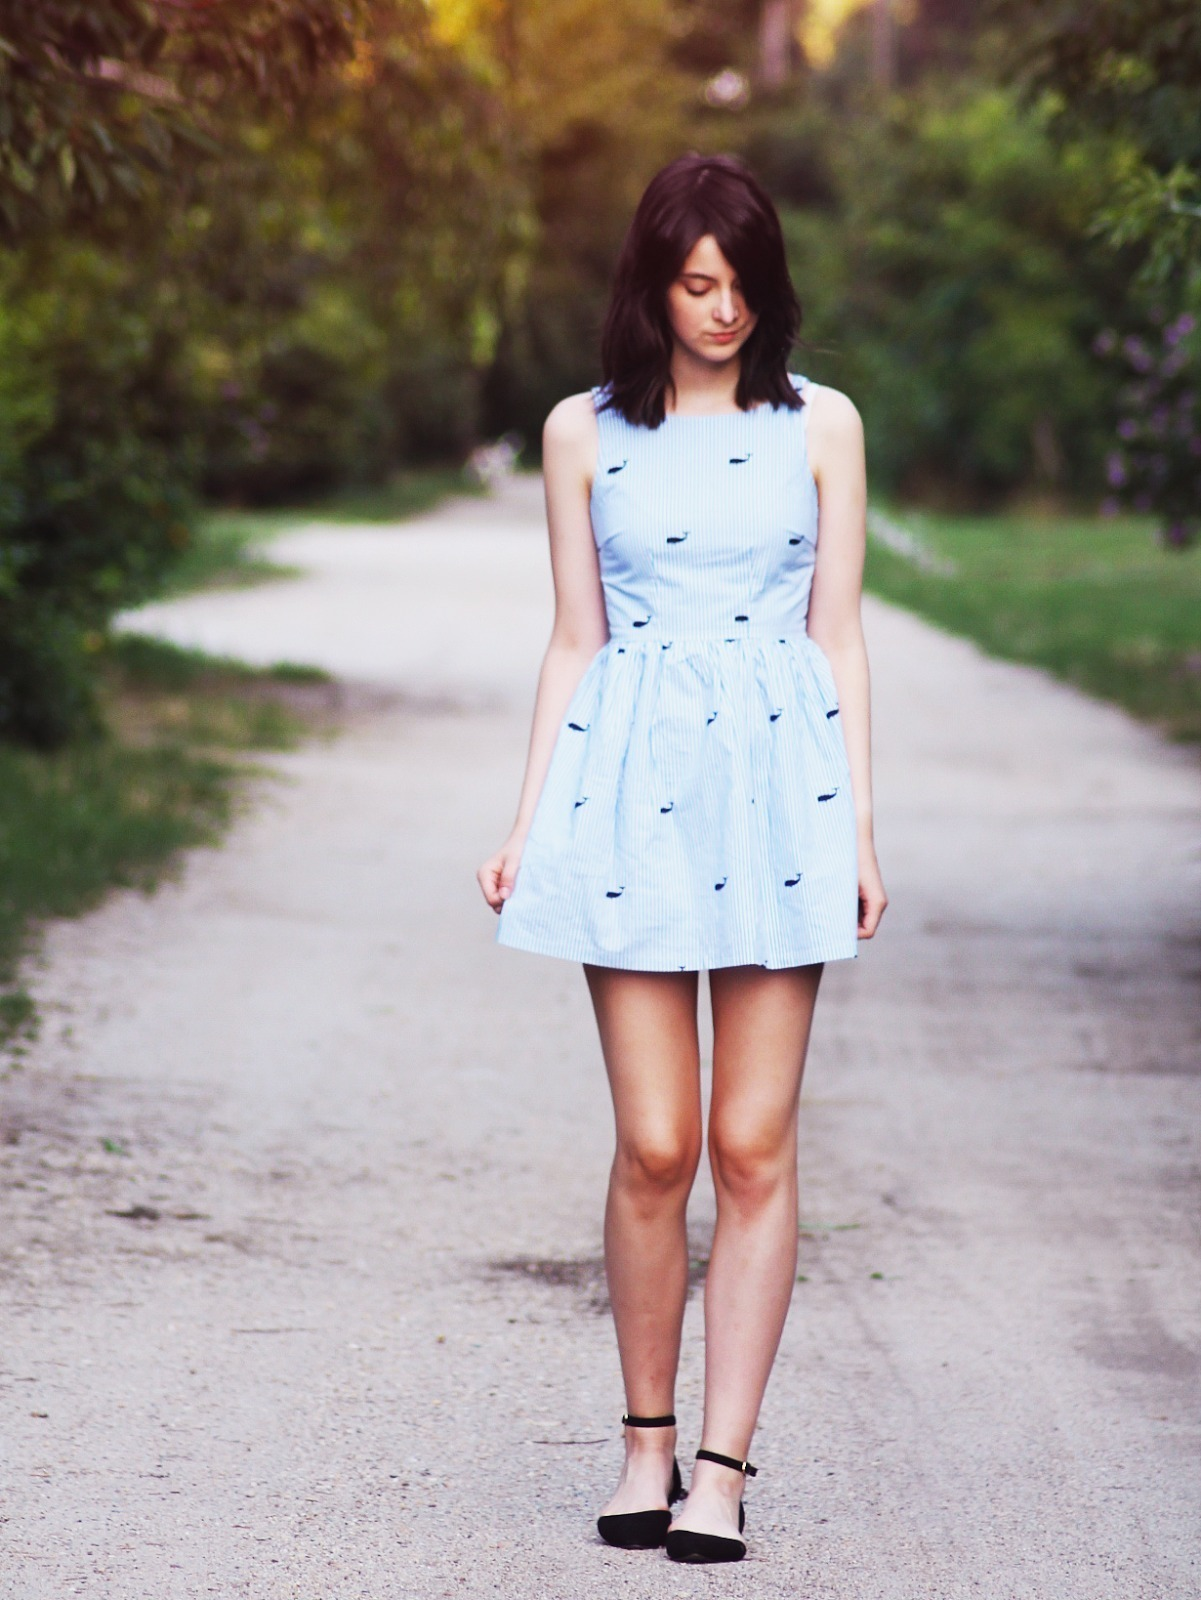 skater dress and shoes the miracle of skater dress and